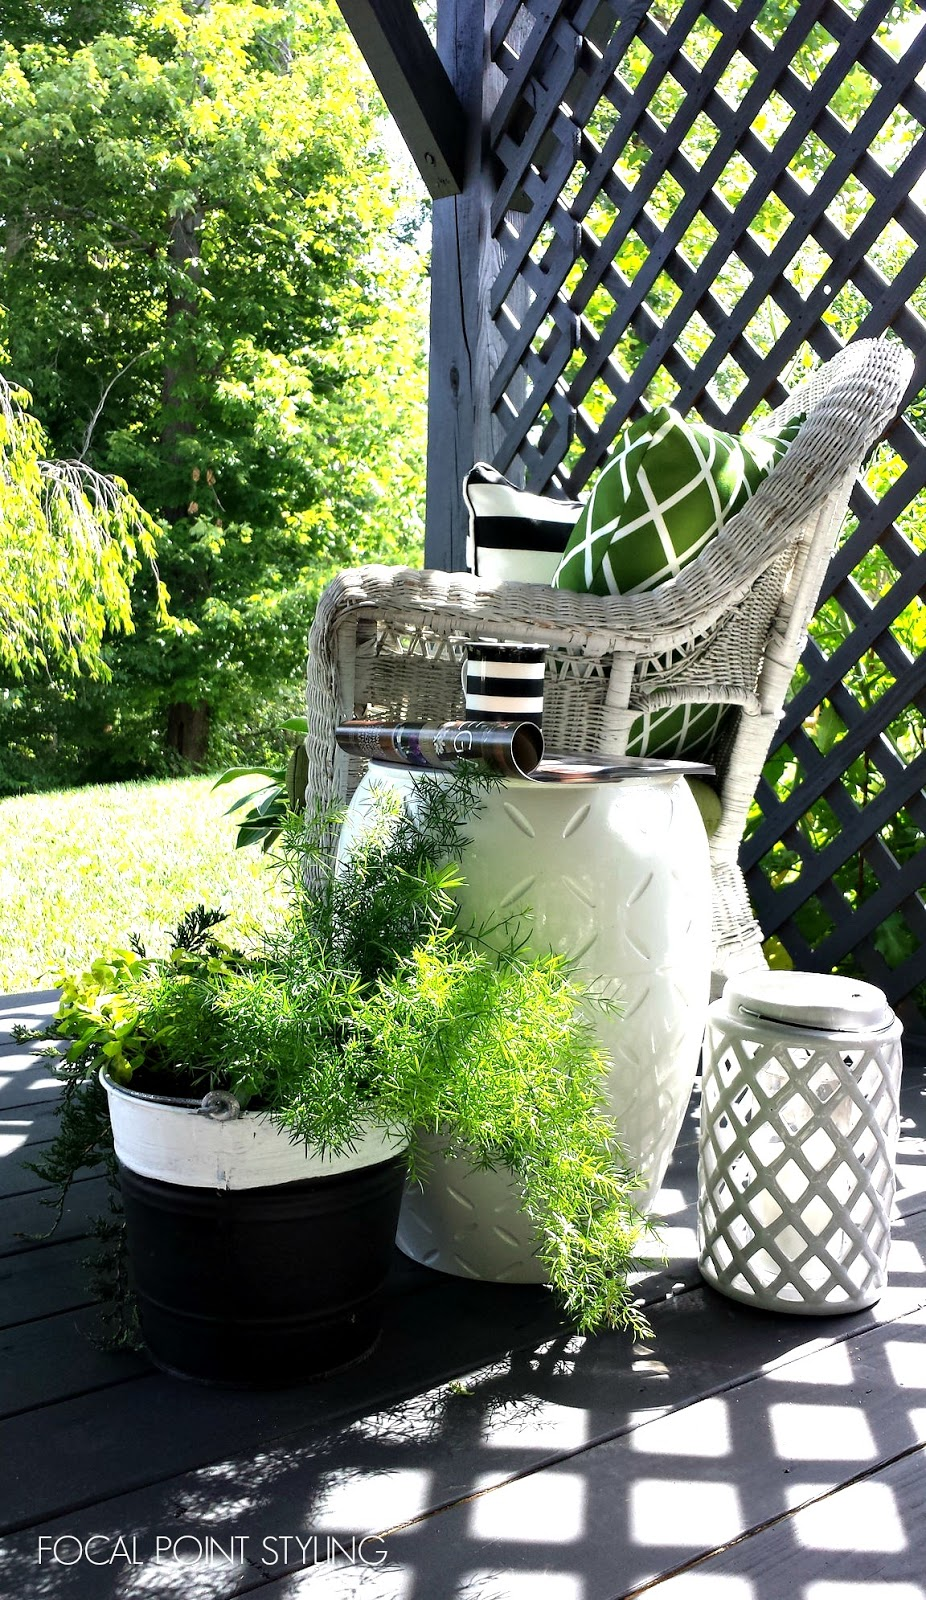 FOCAL POINT STYLING: Easy Outdoor Decorating: Mixing Old & New Deck ...